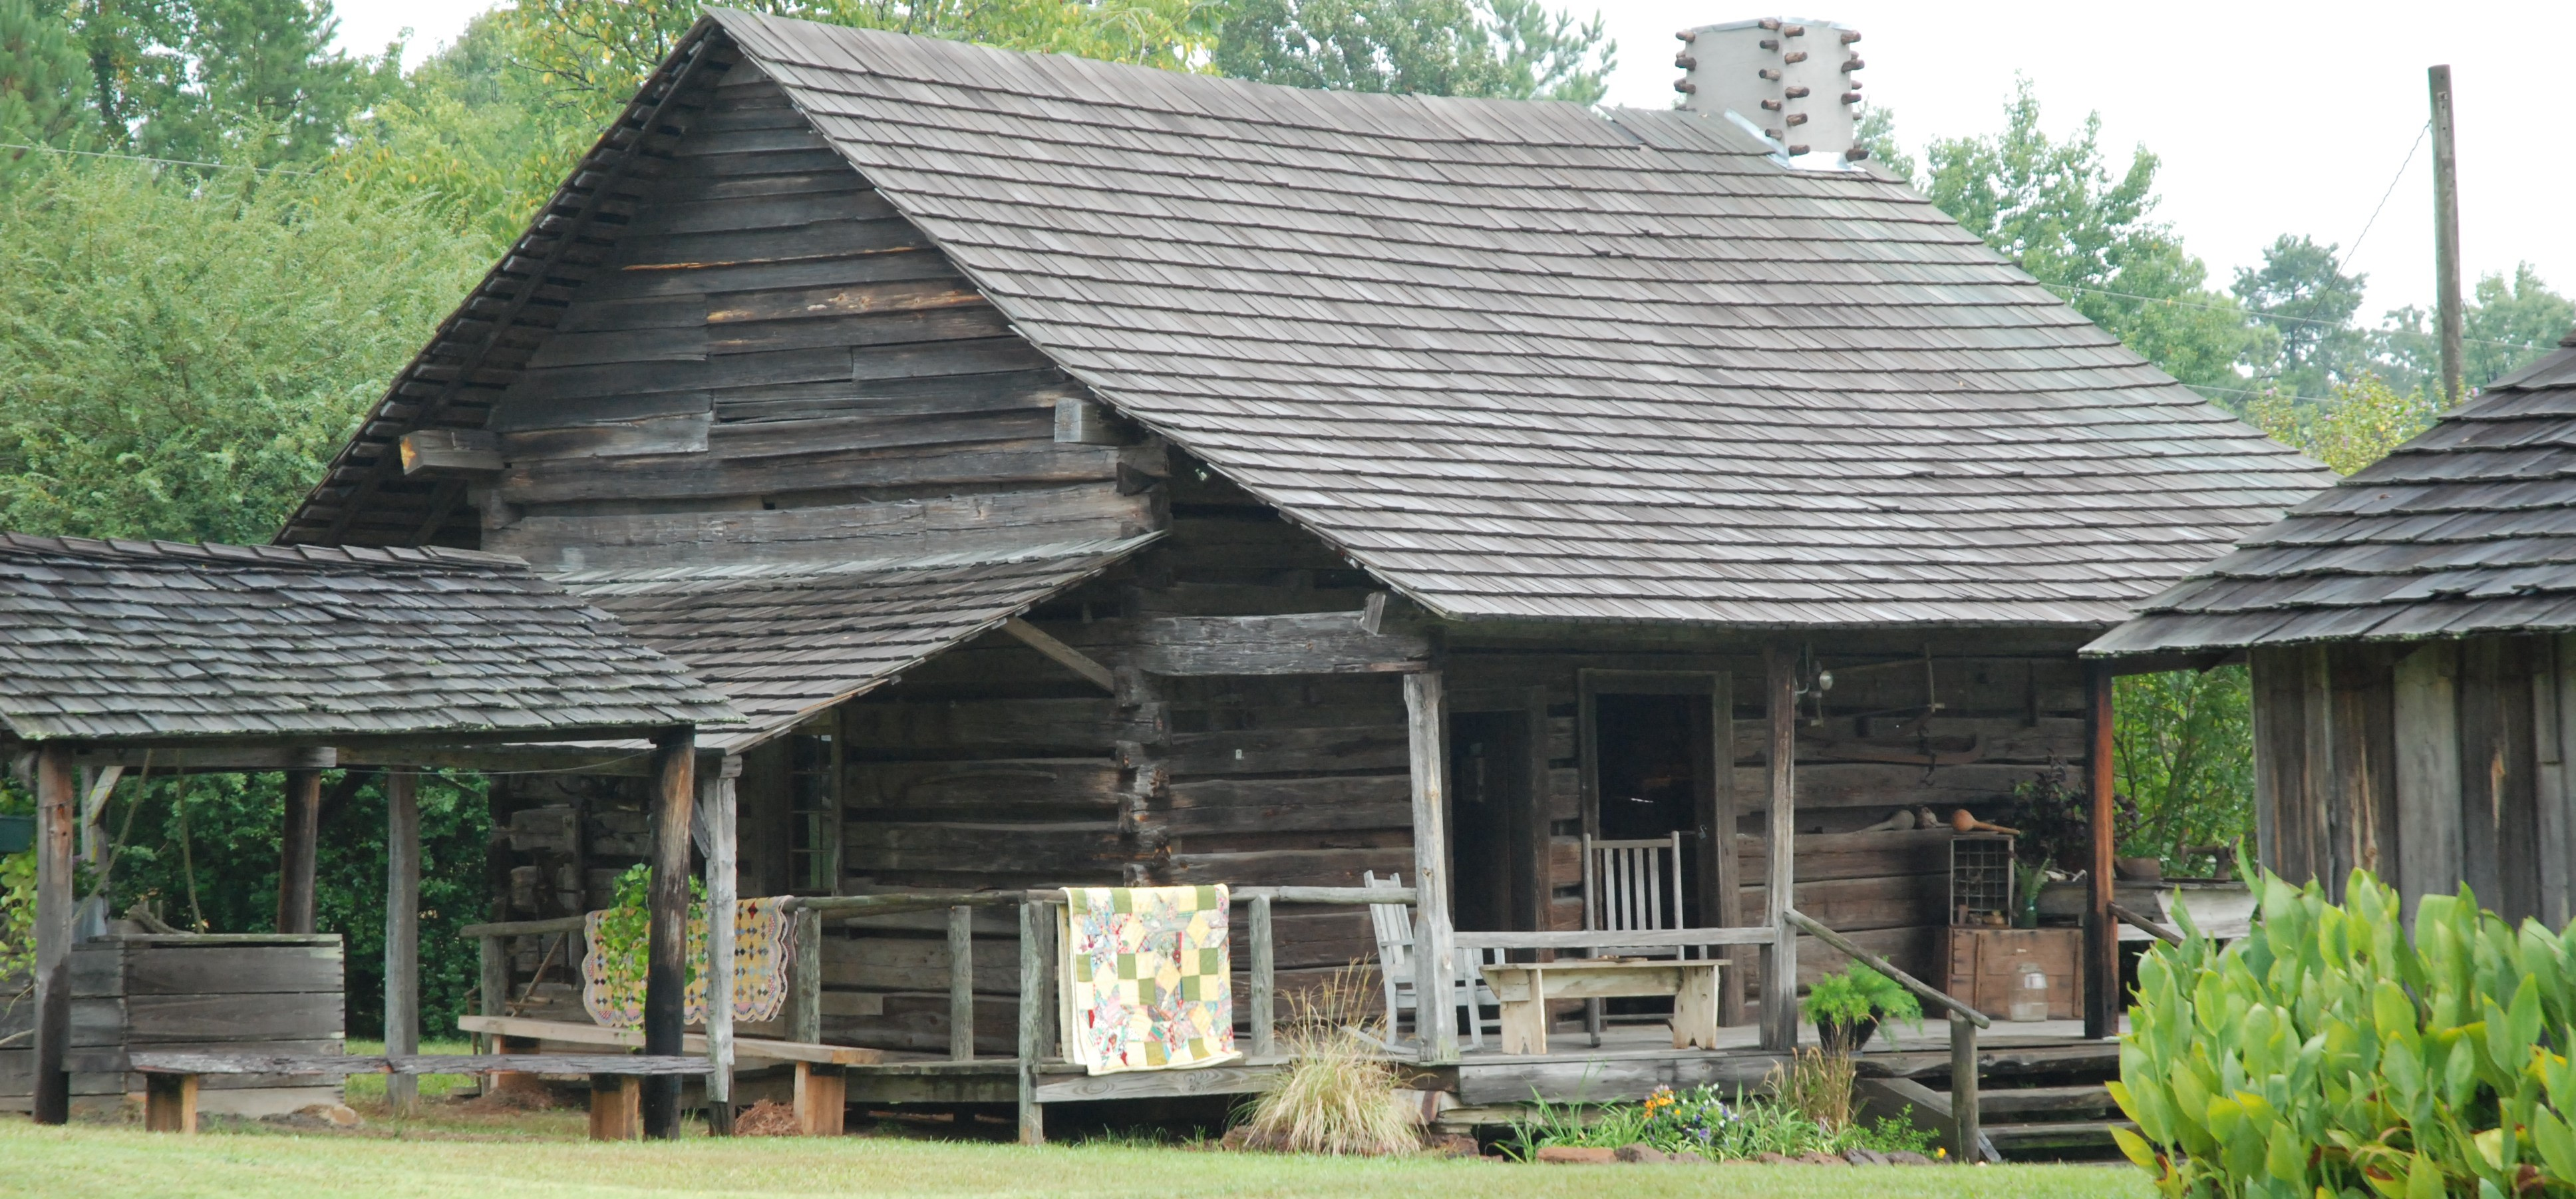 Germantown Colony Museum